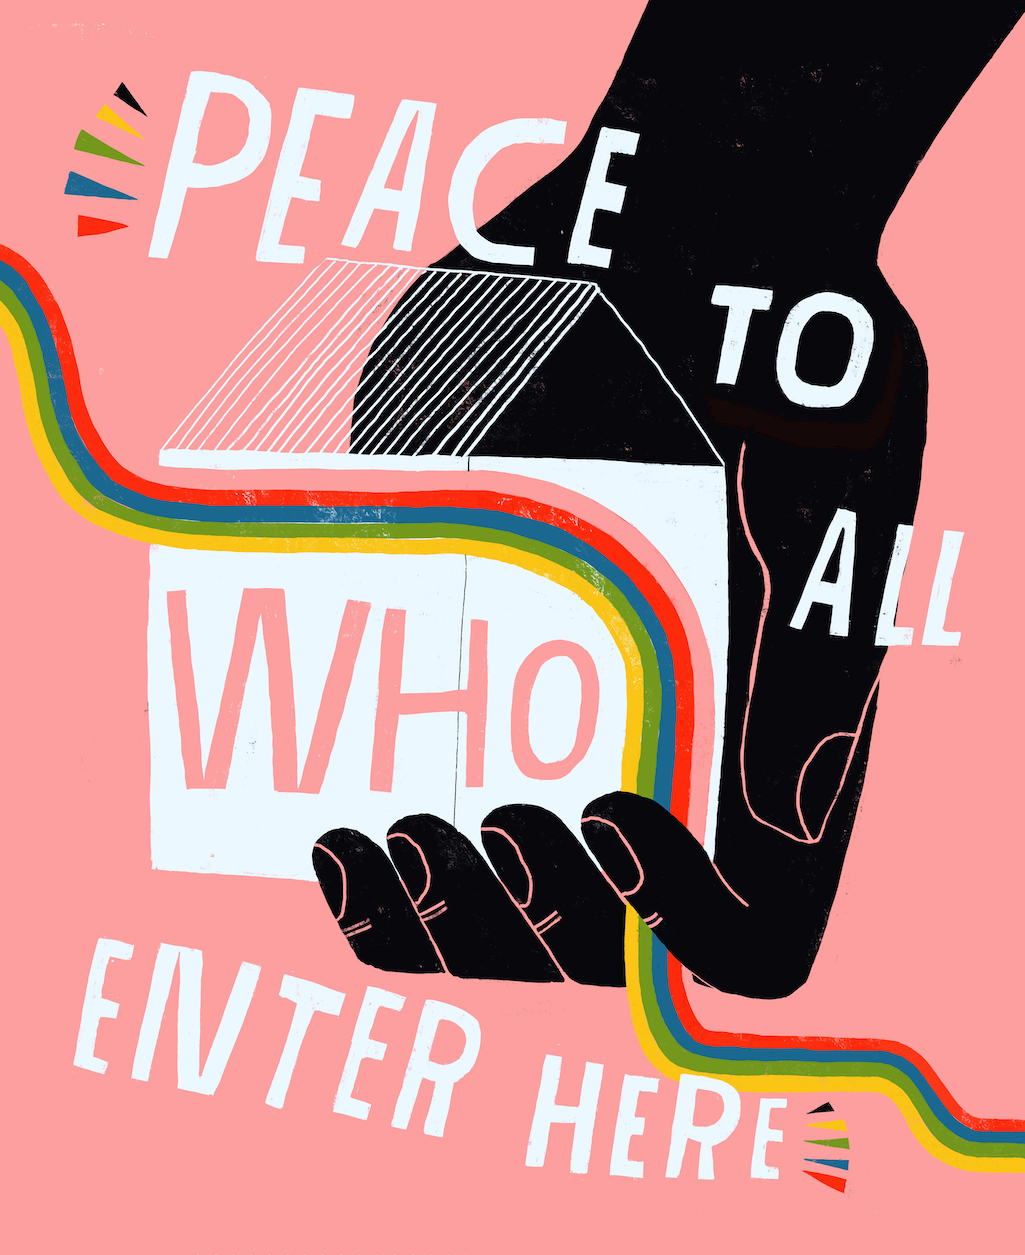 Lisa Congdon Peace to All Who Enter Here print